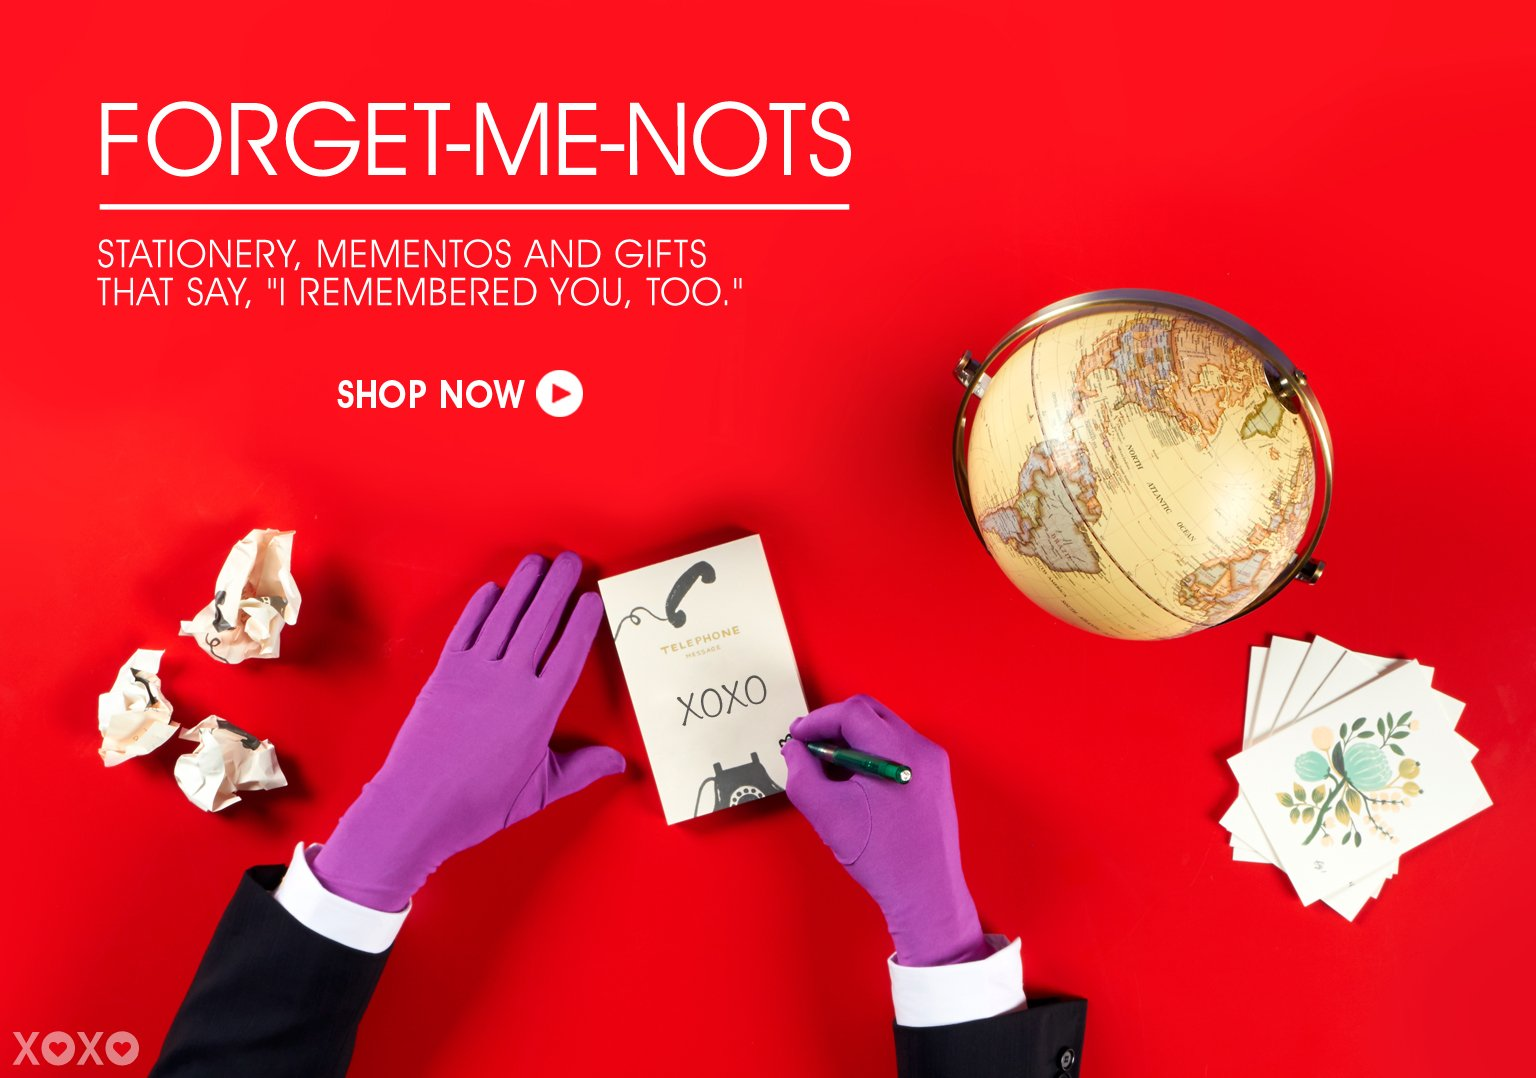 Forget-Me-Not Stationery, Momentos & Gifts